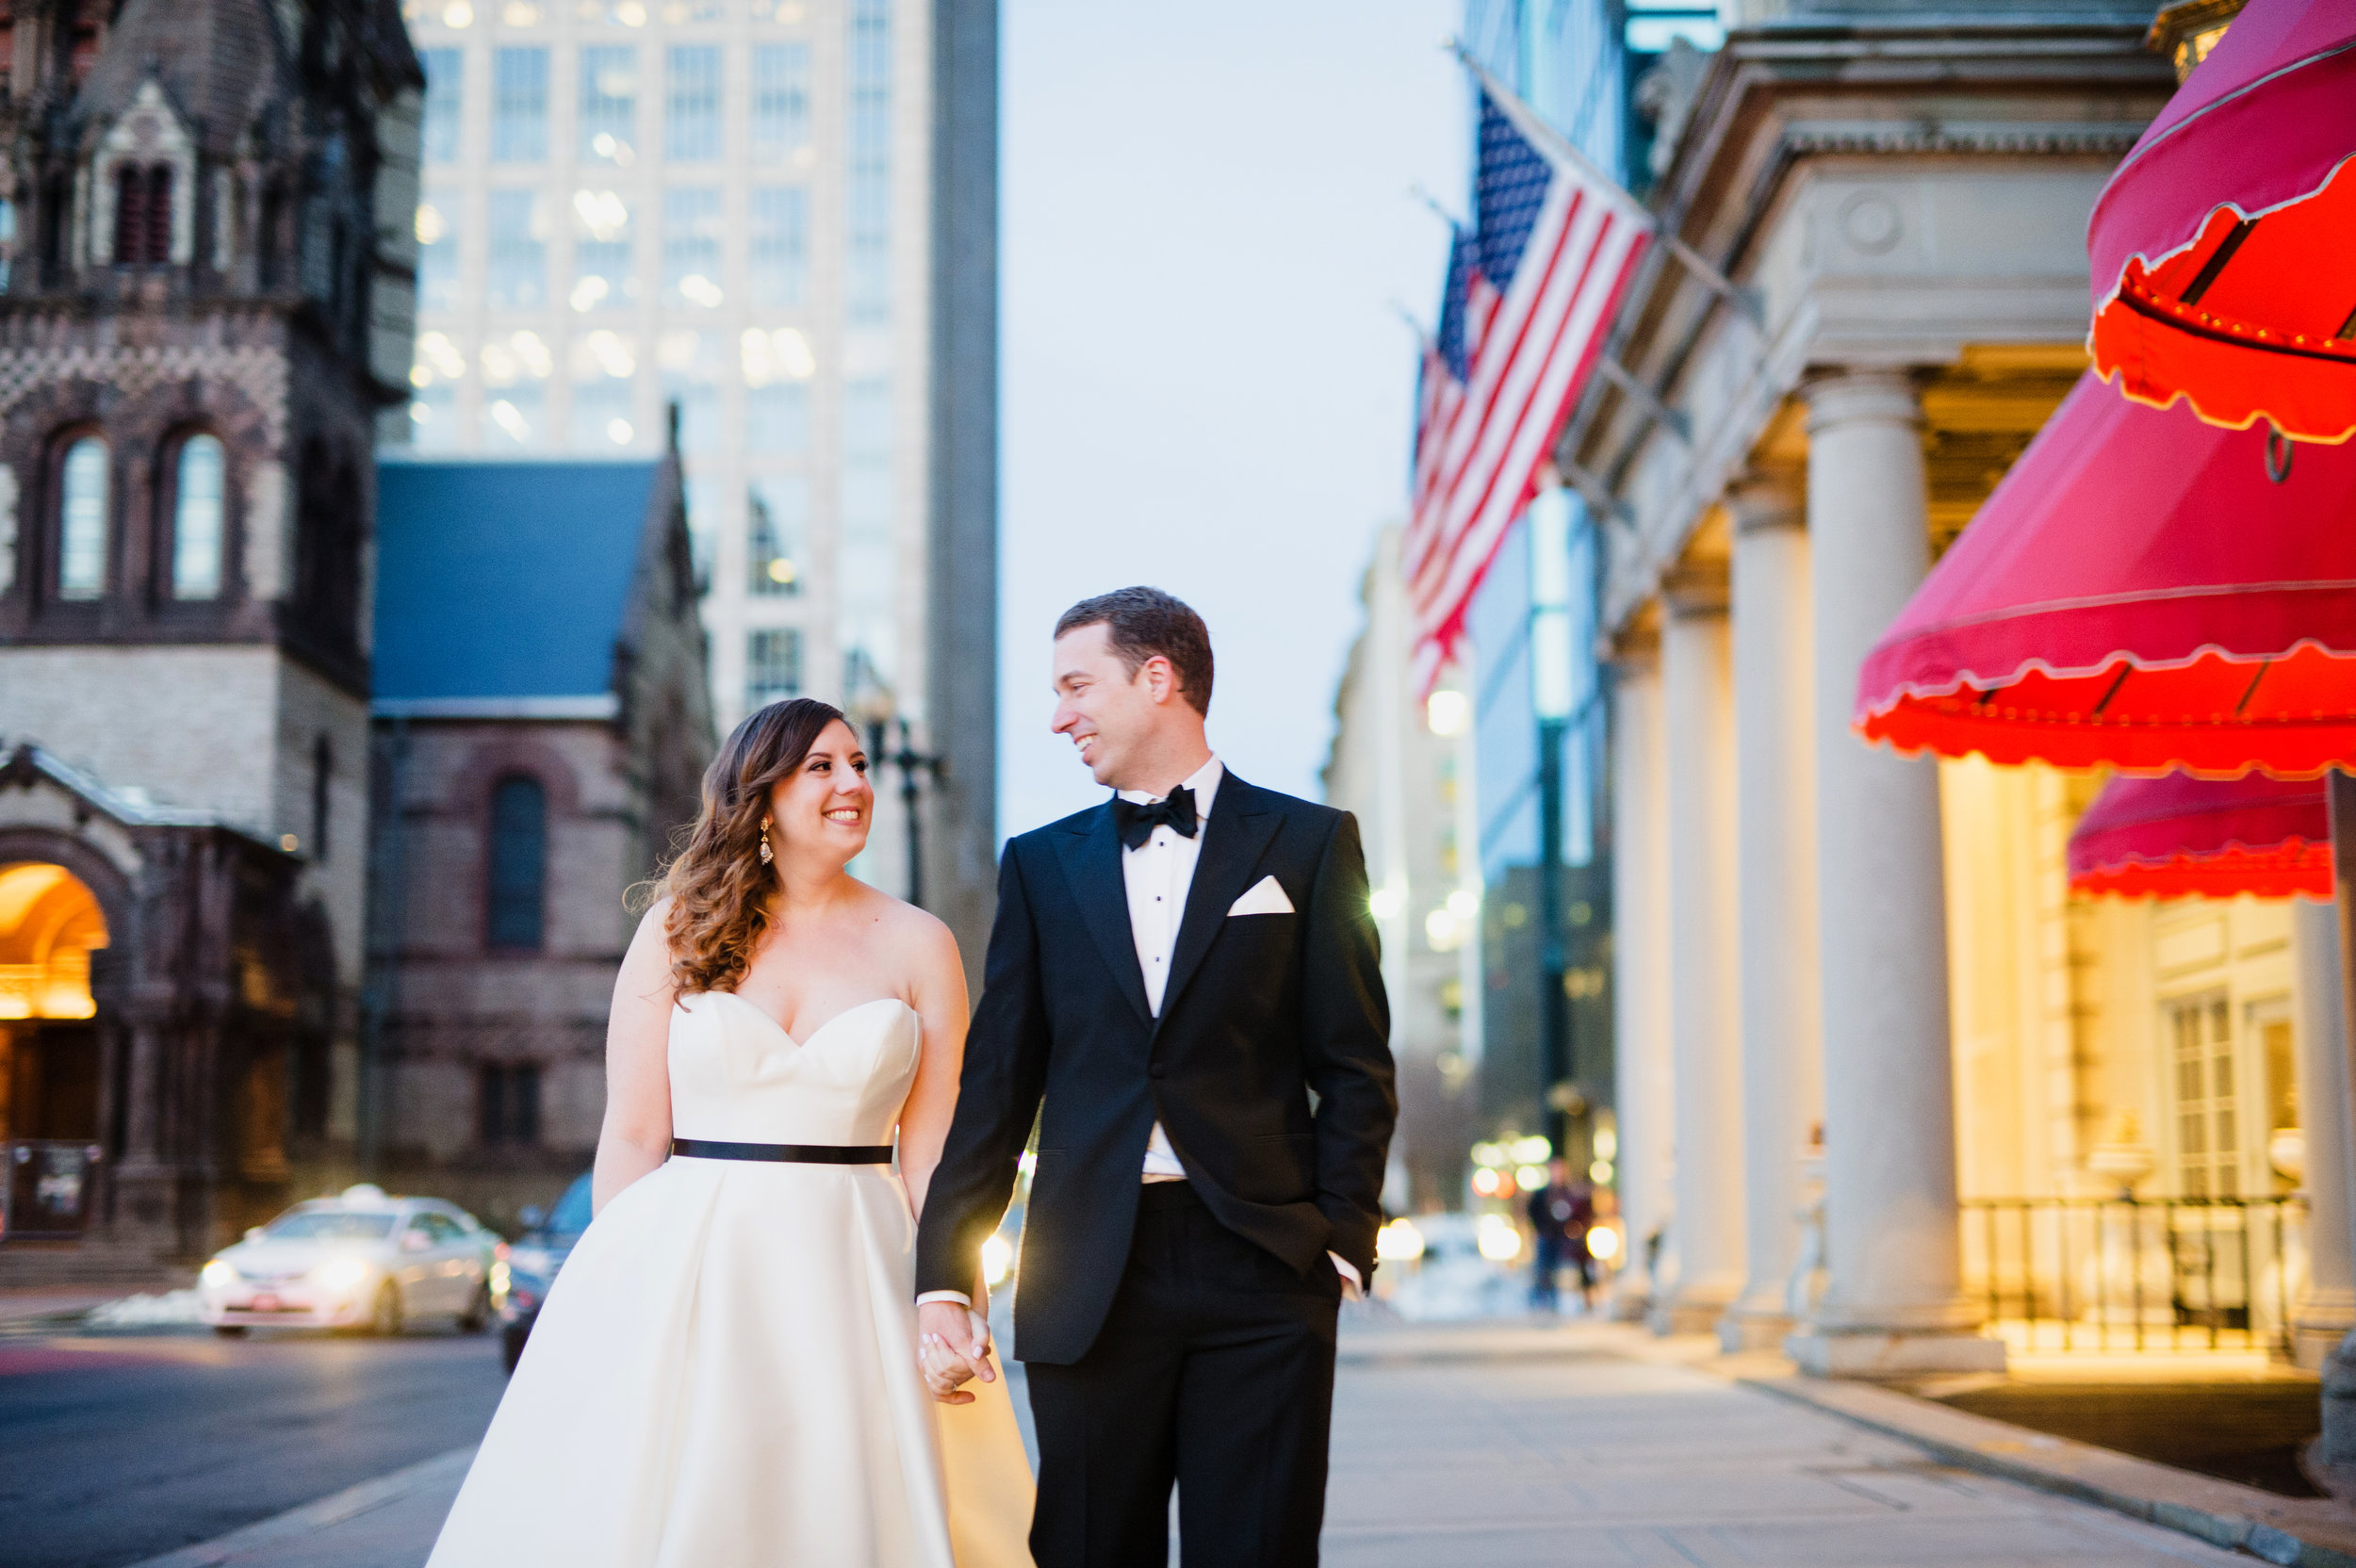 Fairmont-copley-plaza-wedding-photo-37.JPG